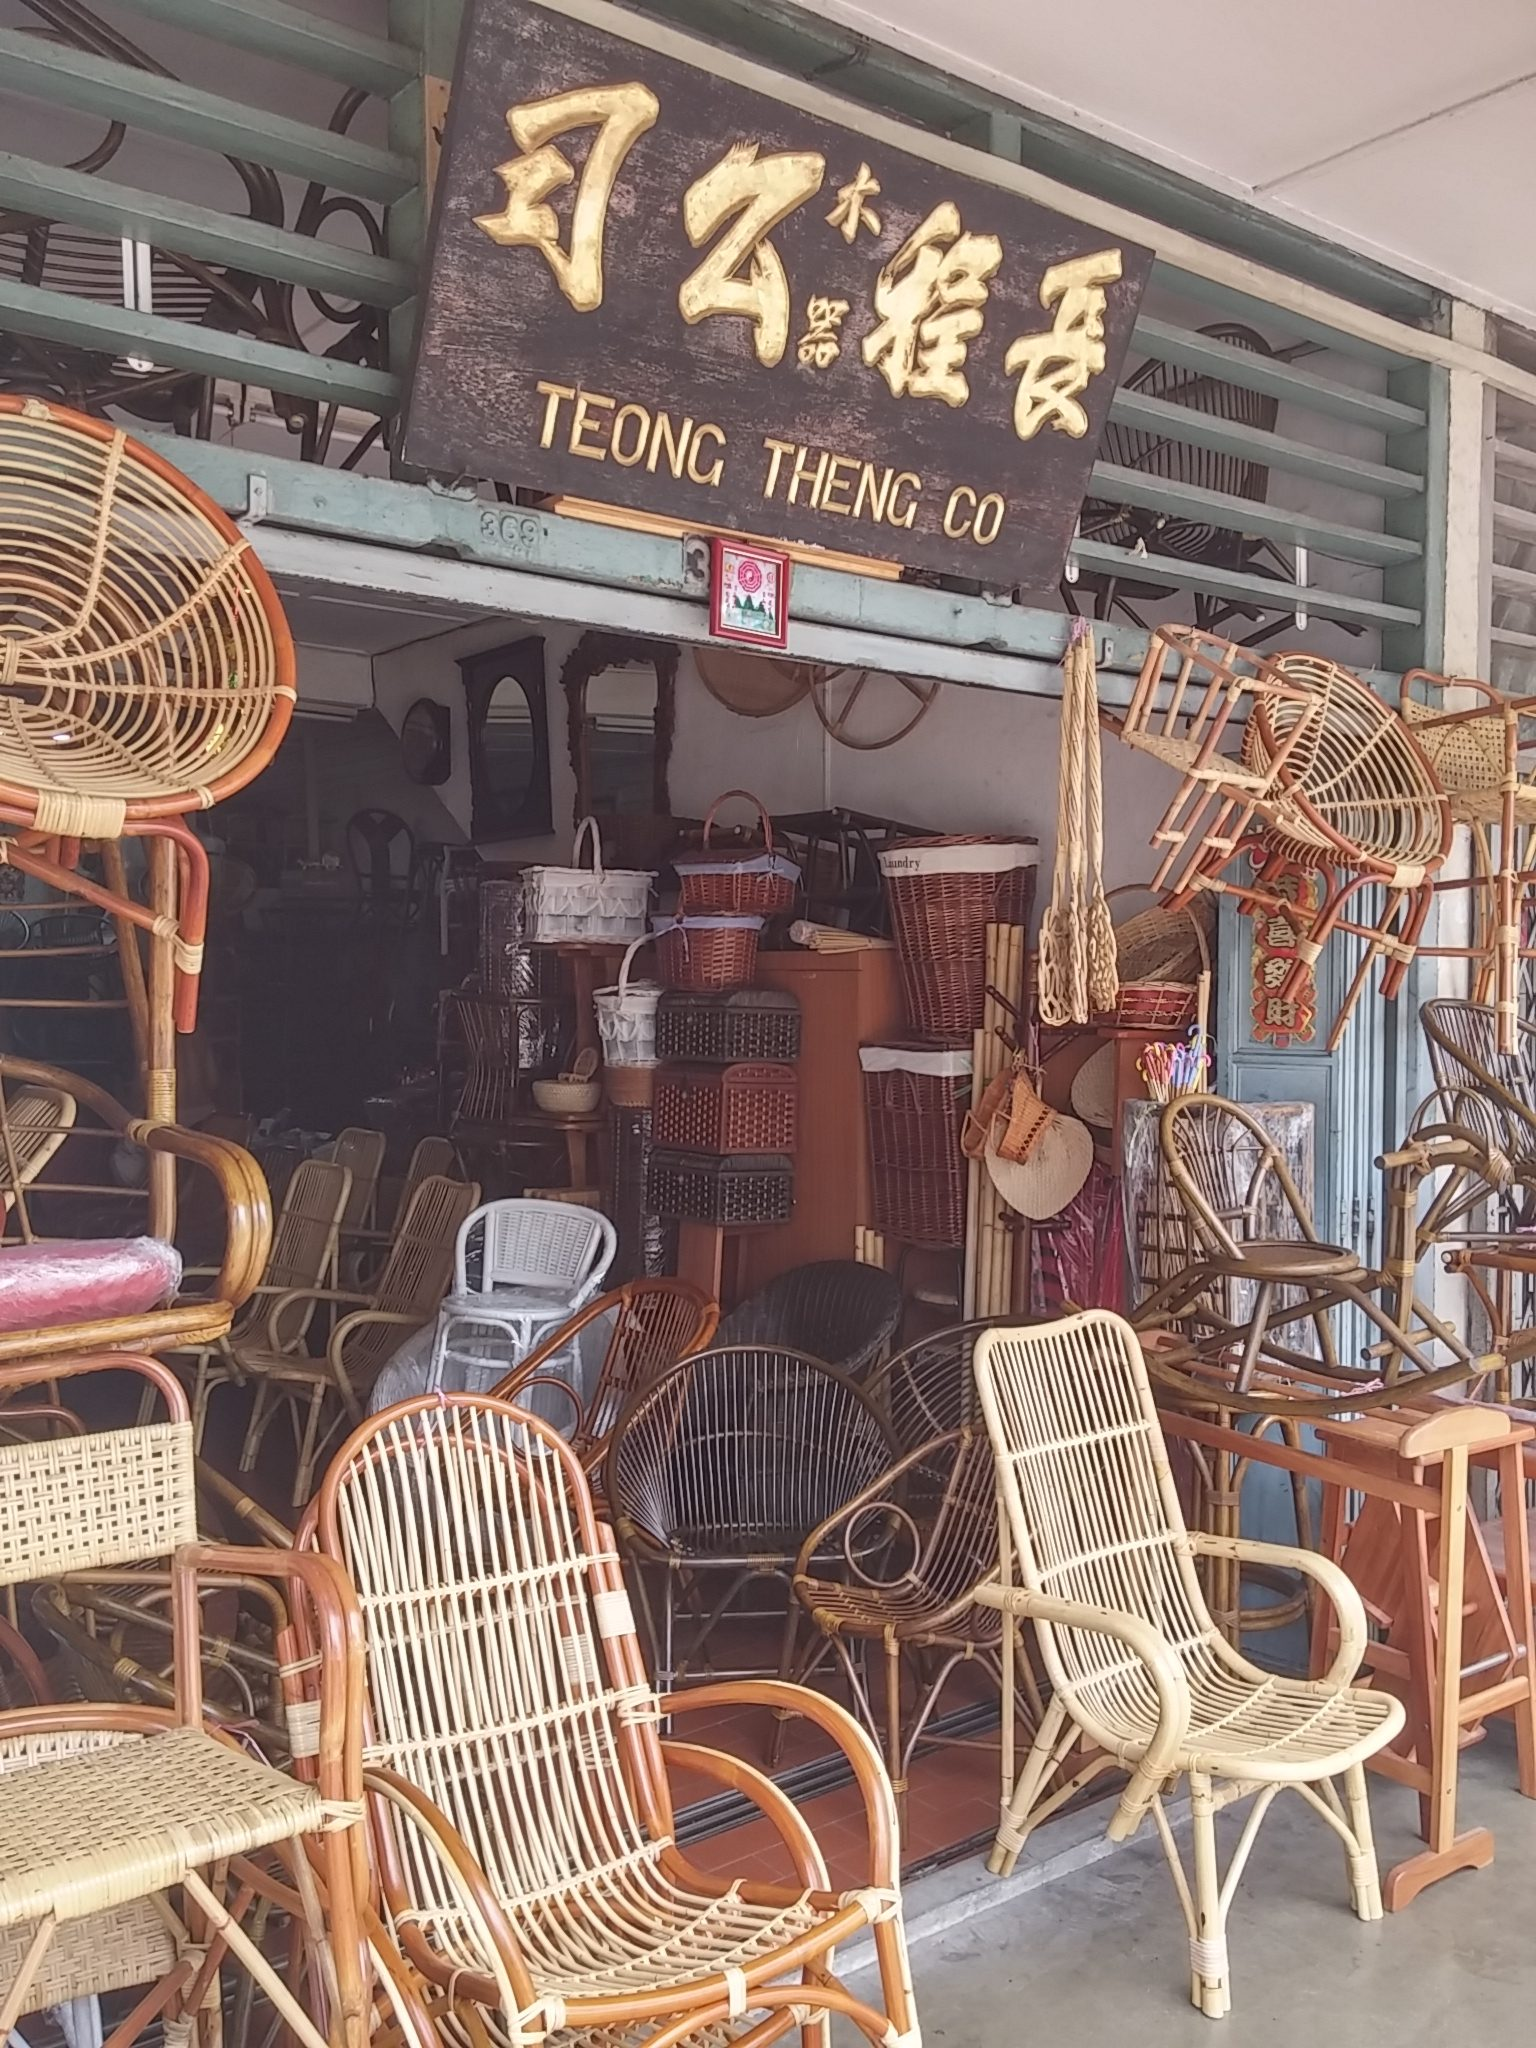 A store selling rattan chairs